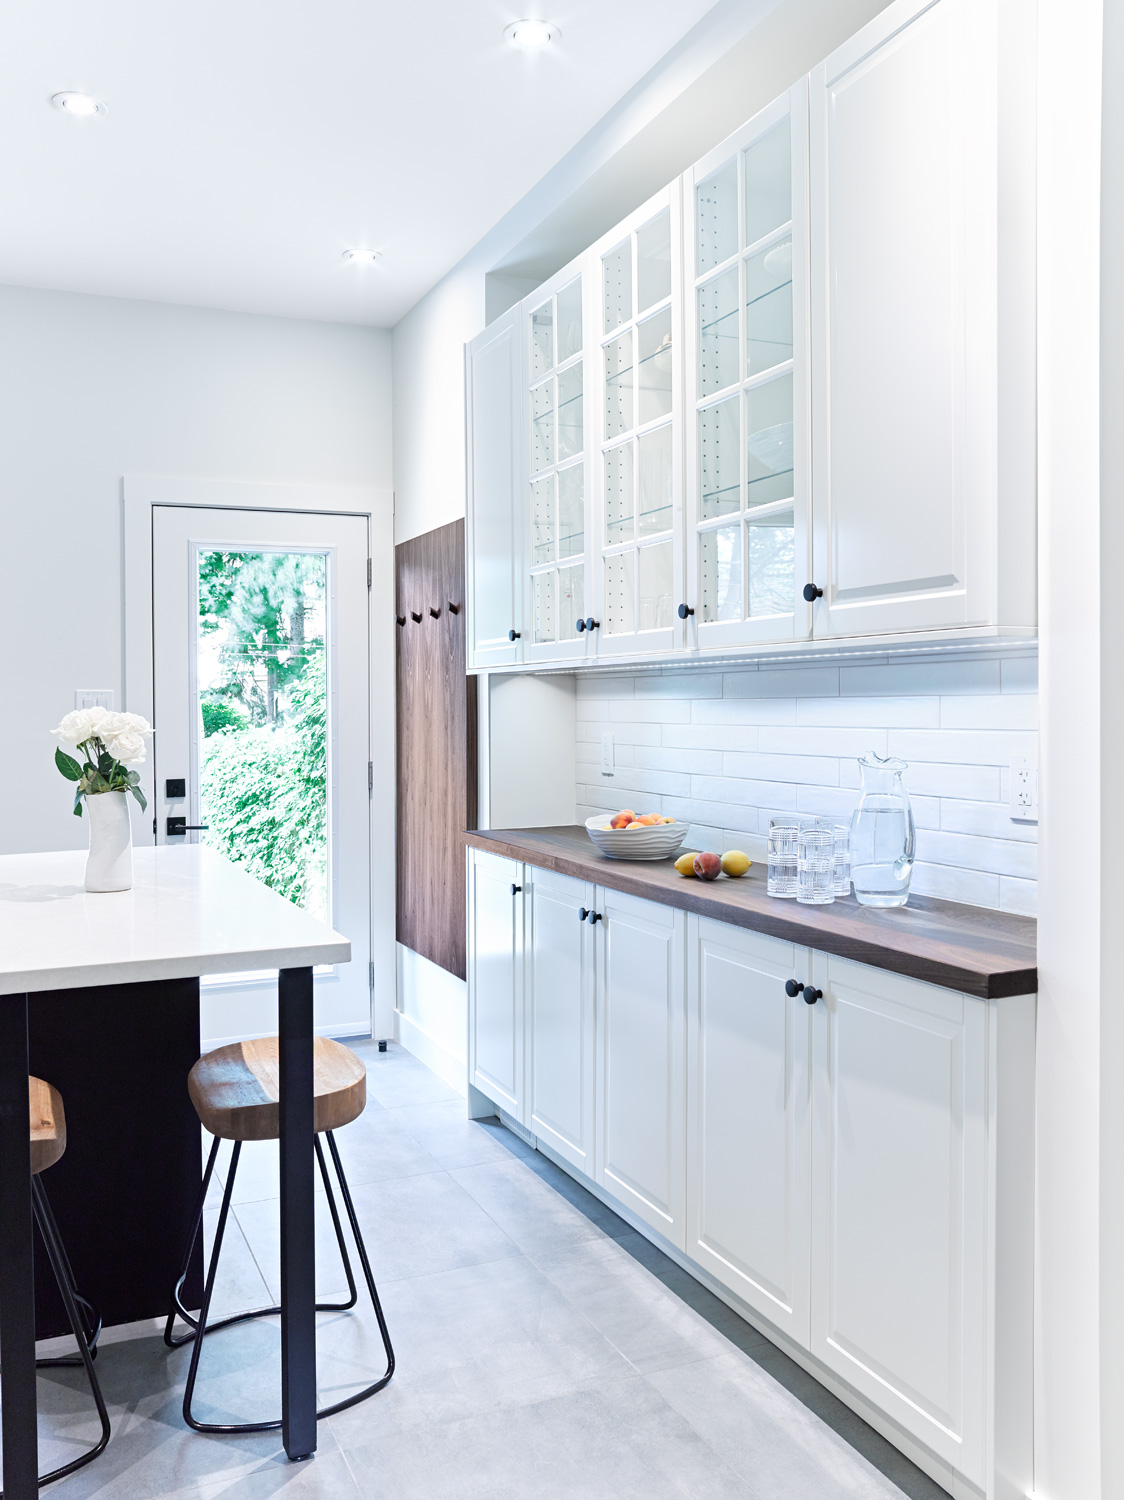 White Servery Area with Wood Countertop